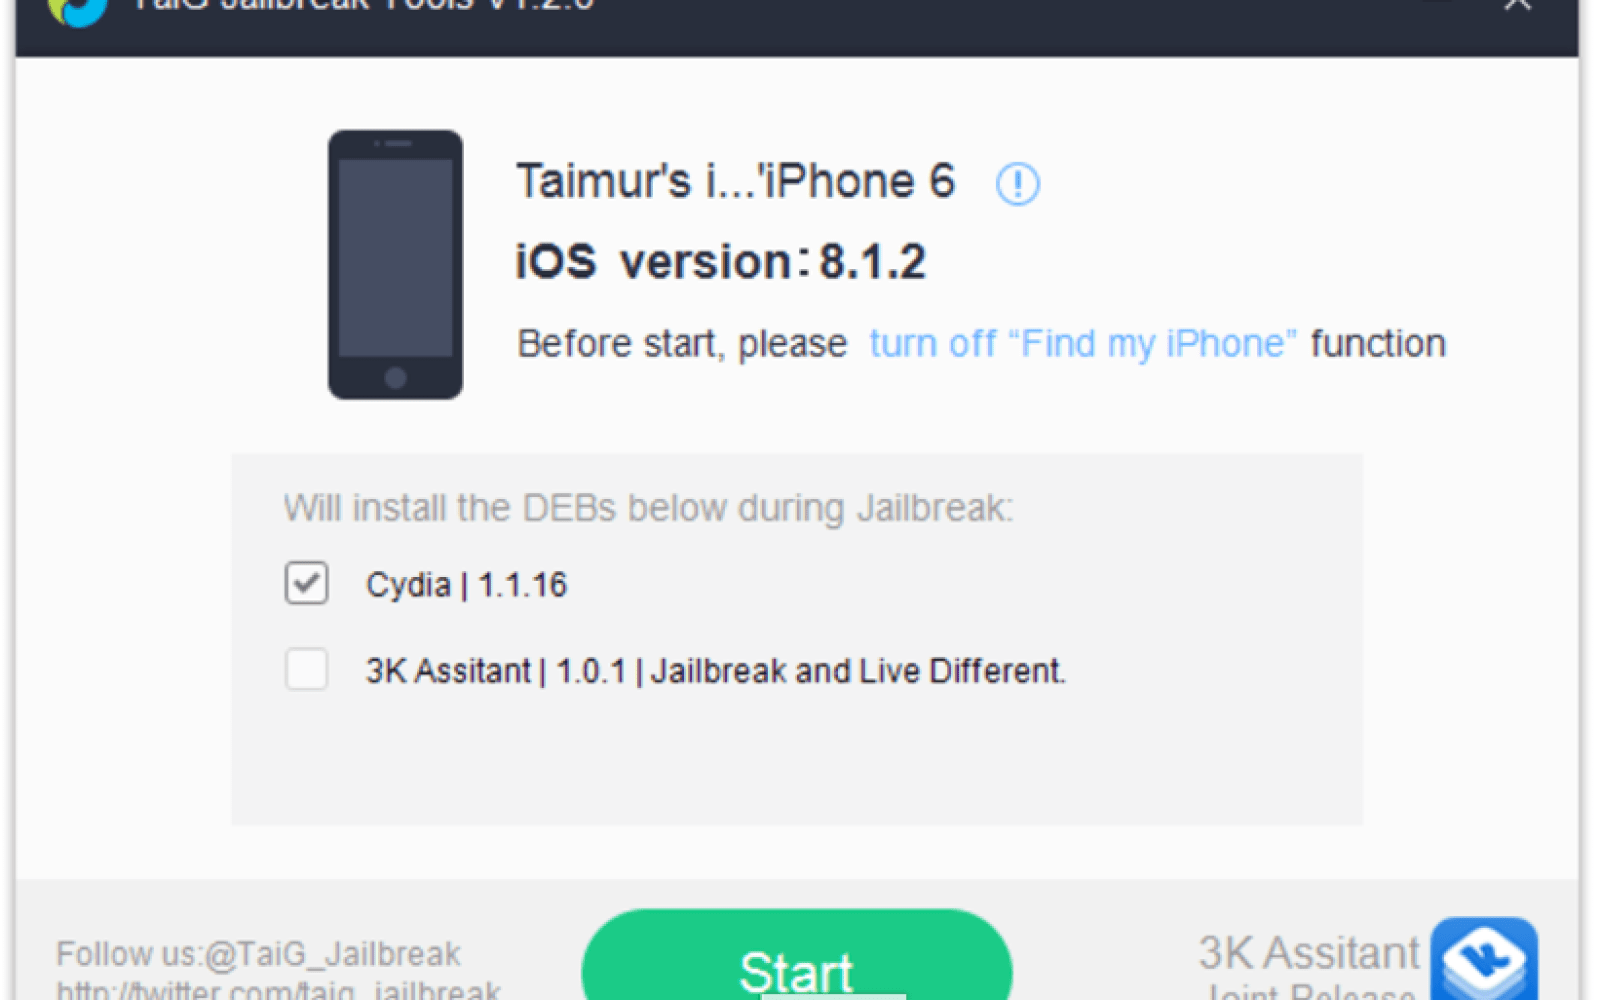 TaiG jailbreak almost instantly updated for iOS 8.1.2, download available now